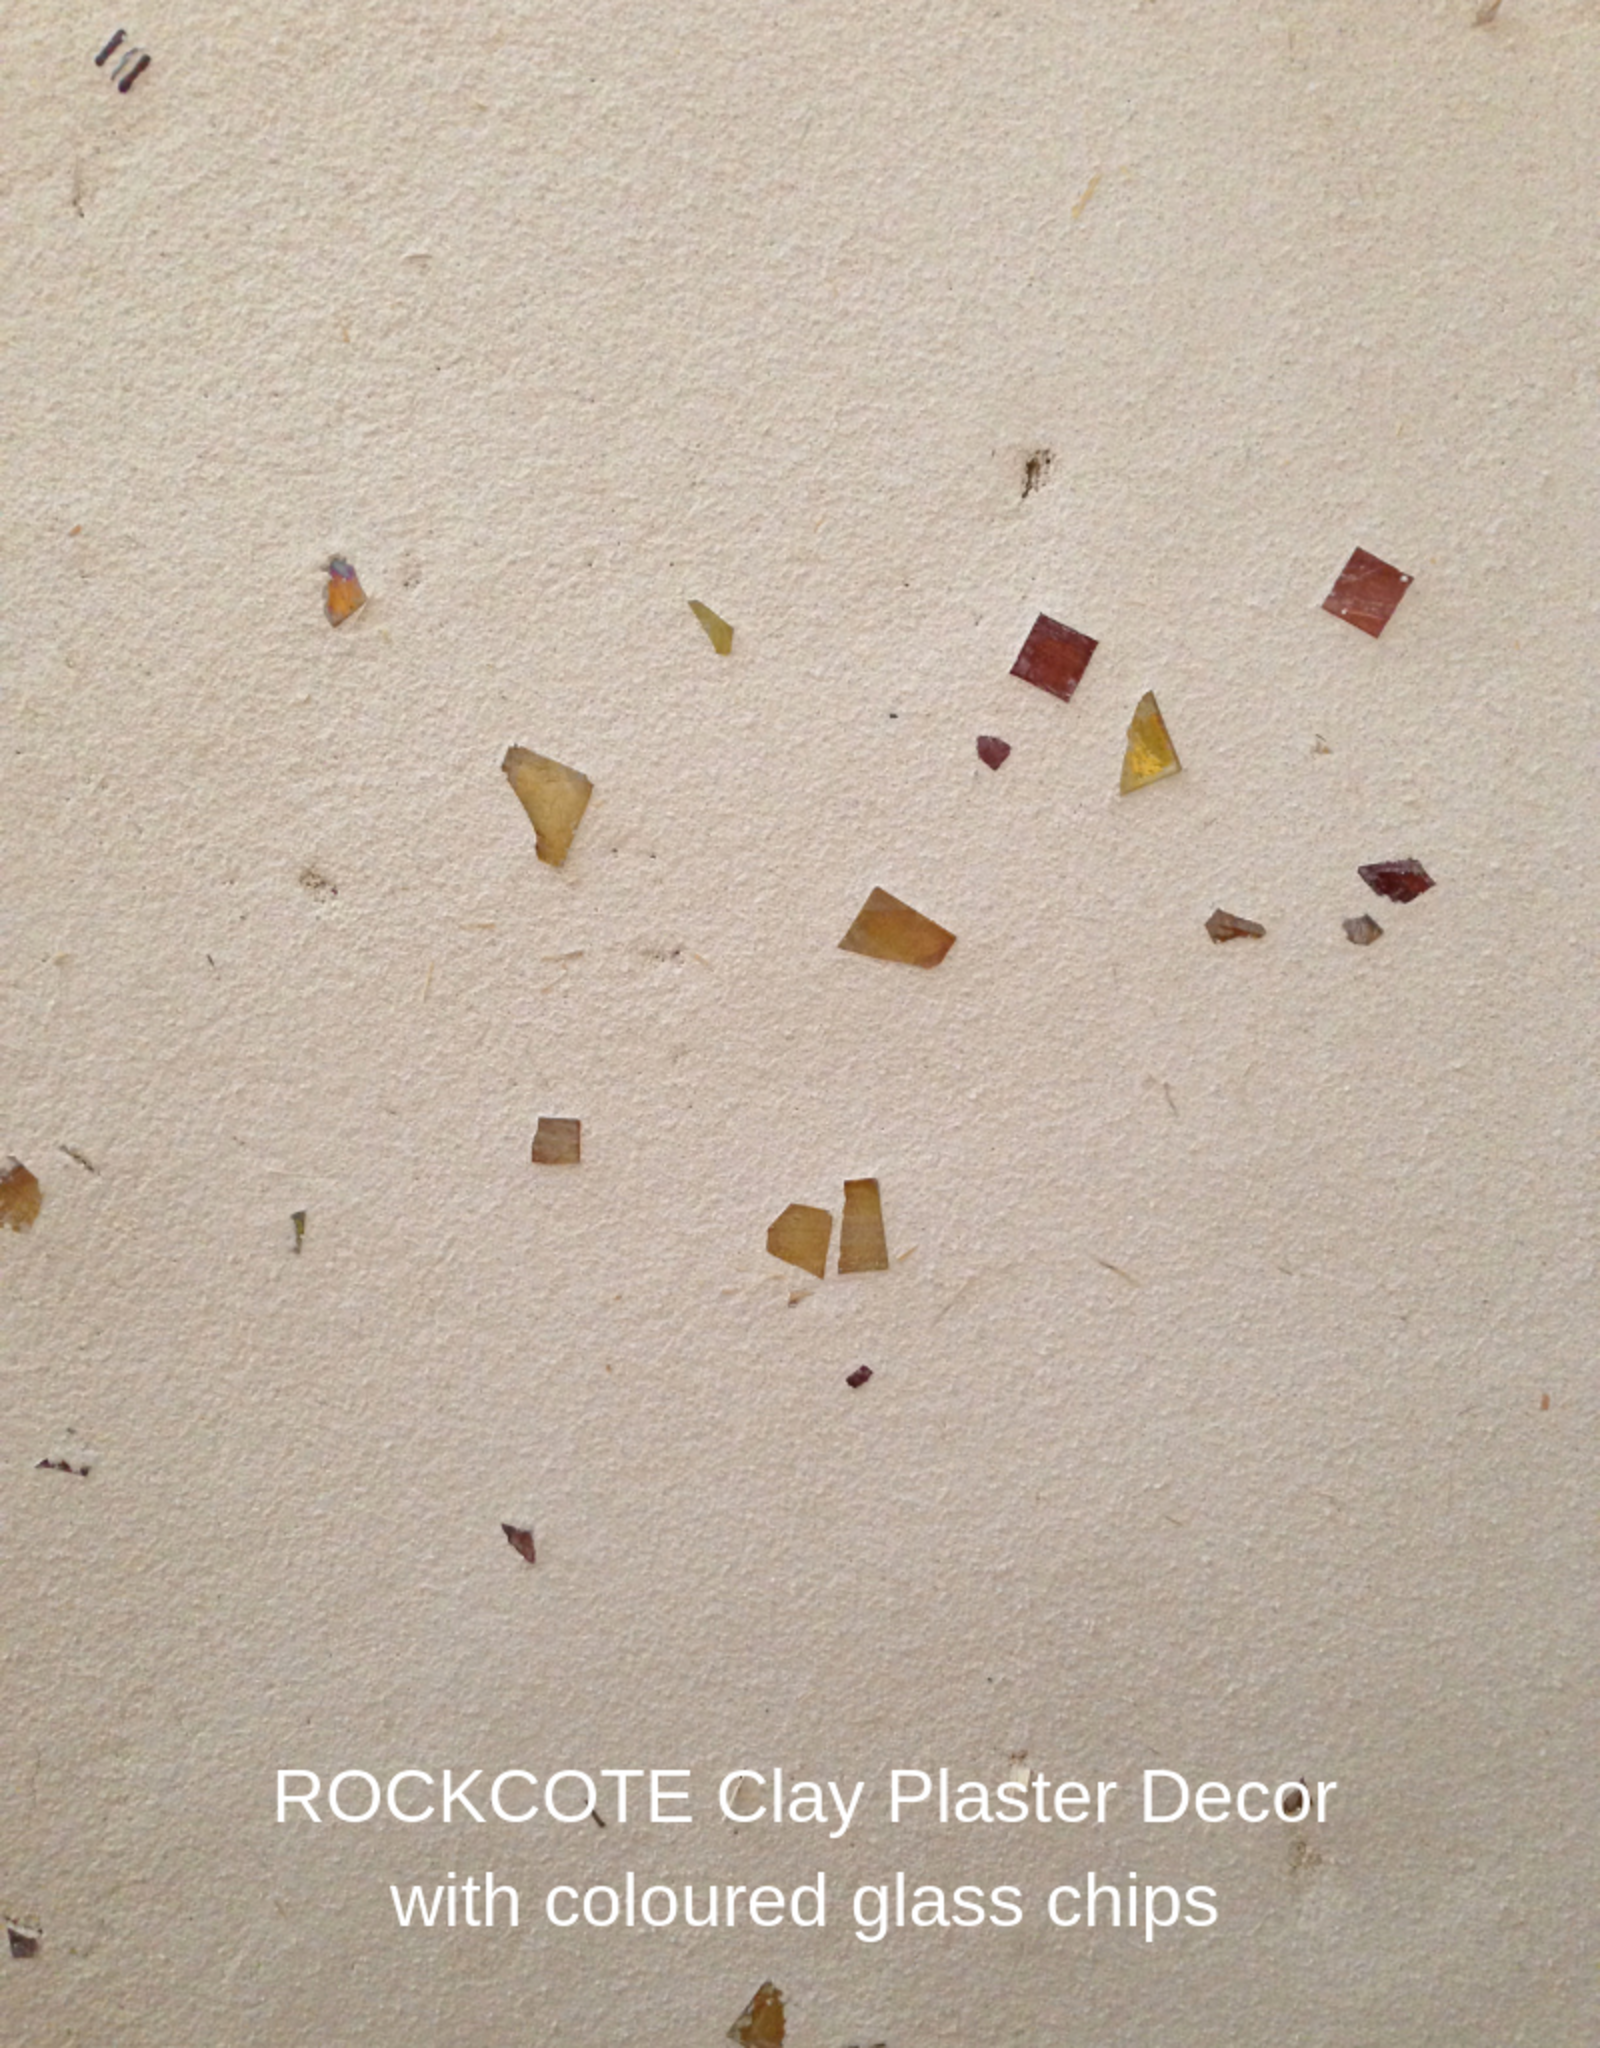 ROCKCOTE Clay Plaster Decor